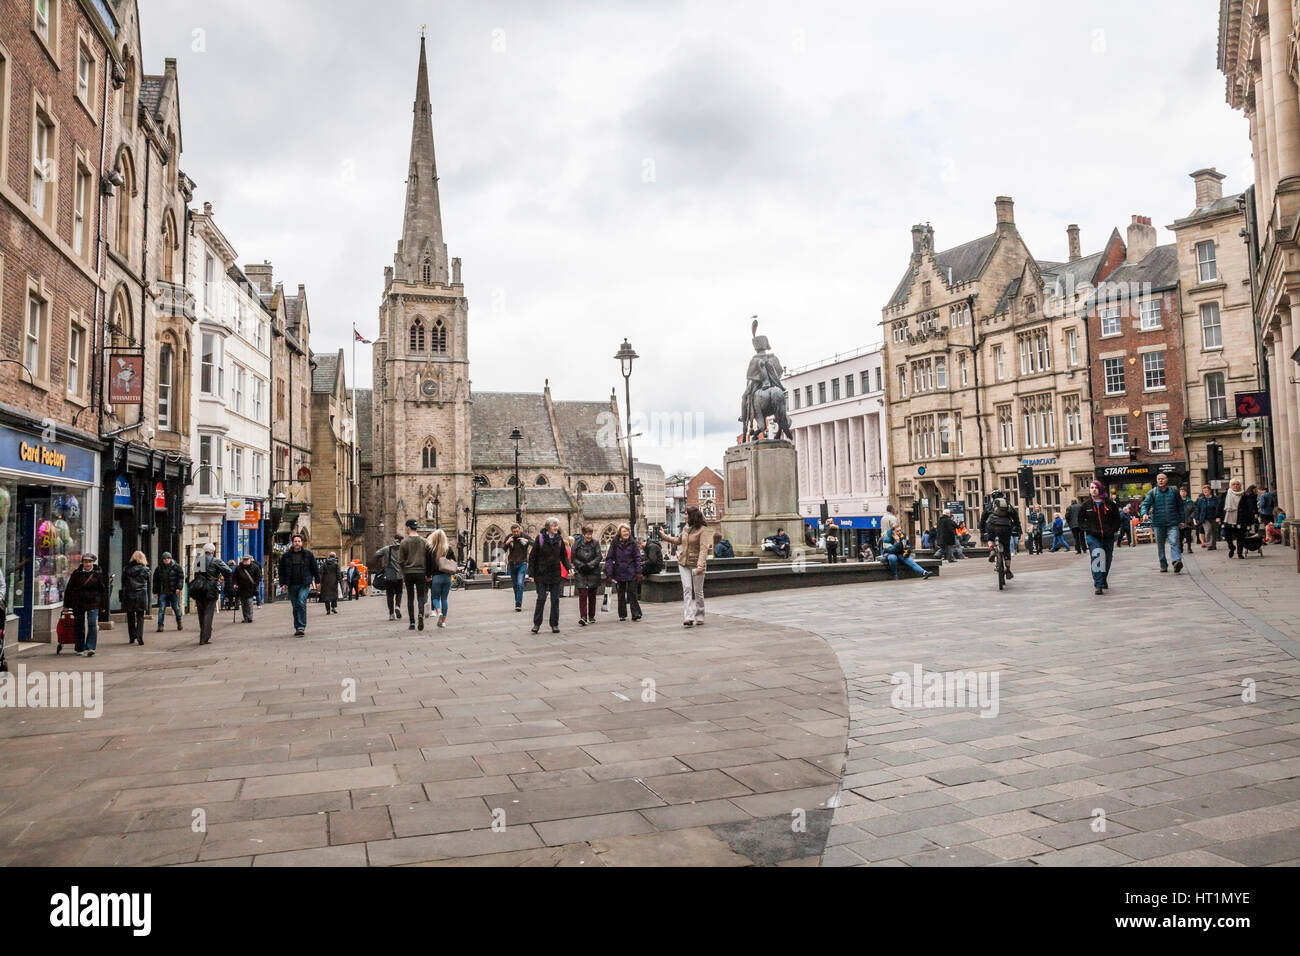 The Busy Market Square In Durham City Center England Uk Stock Photo